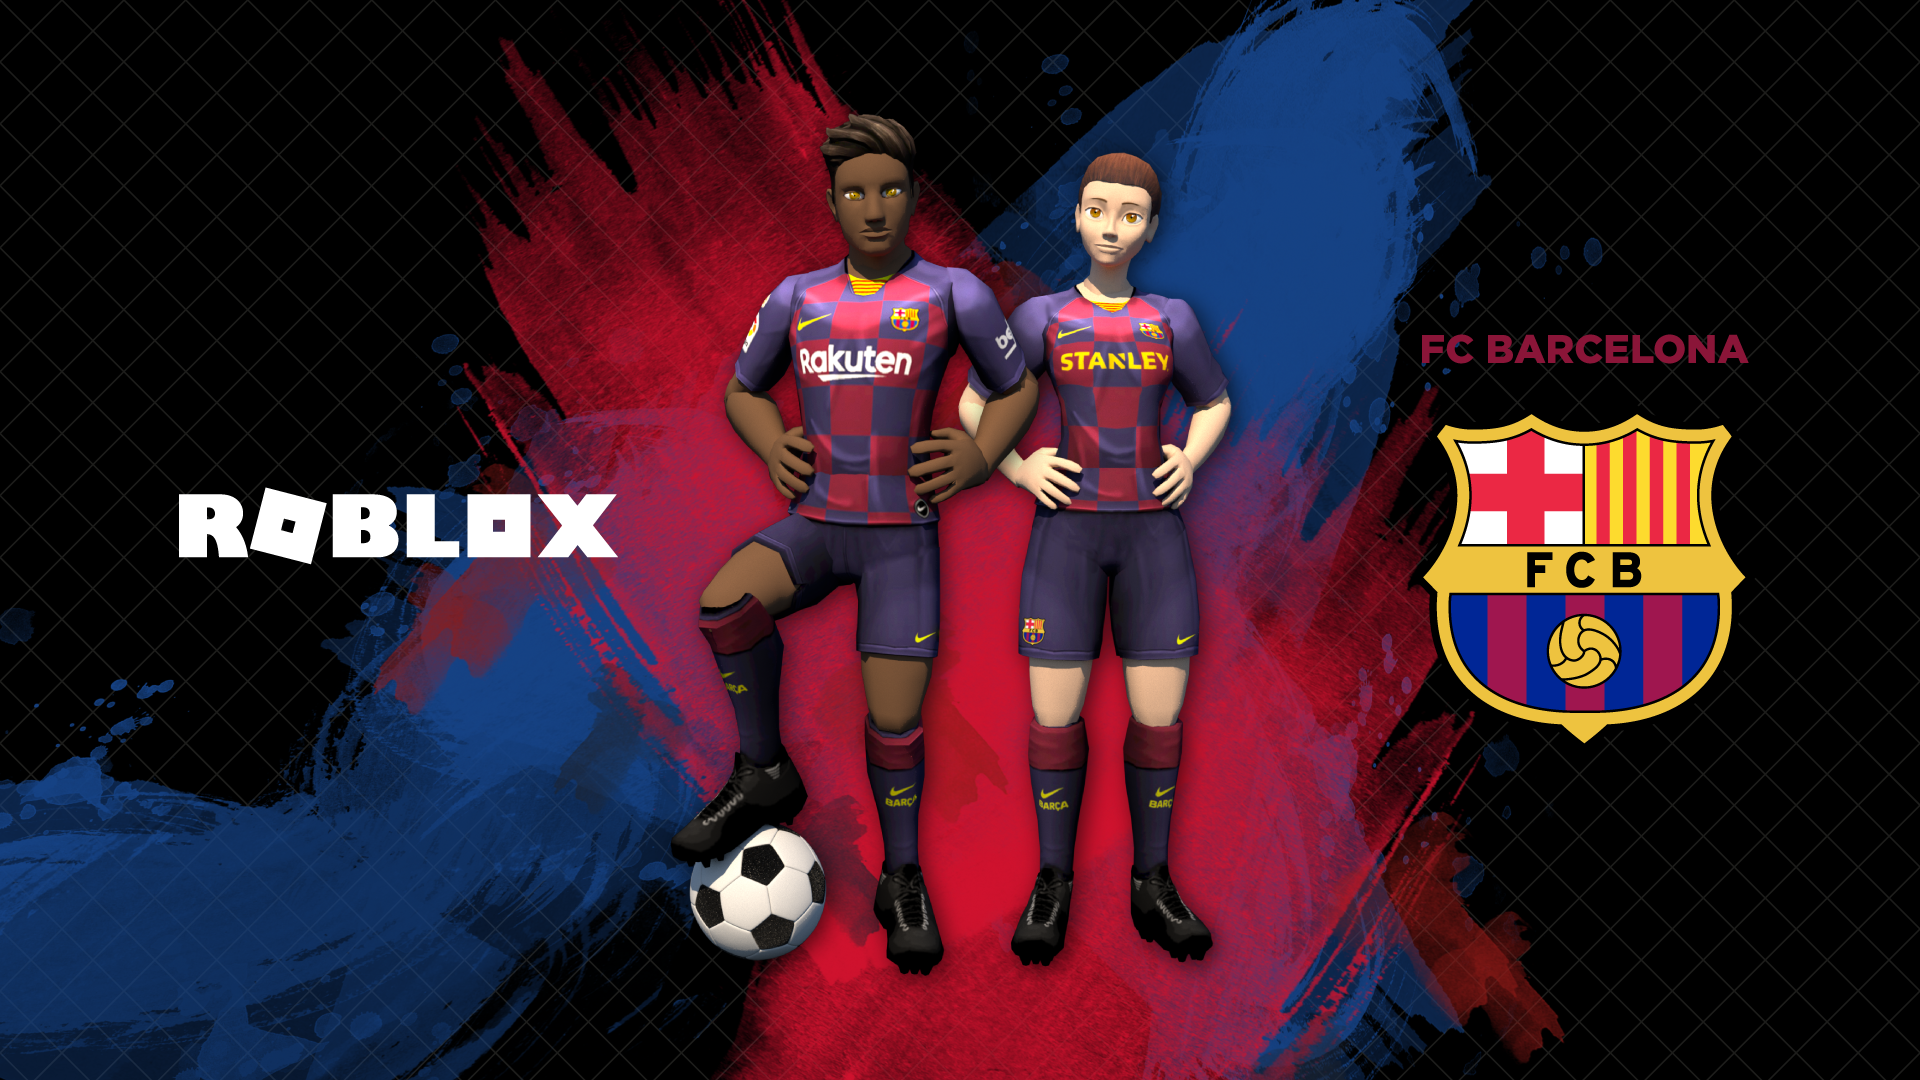 Barca And Roblox Join Forces To Bring More Than 90 Million